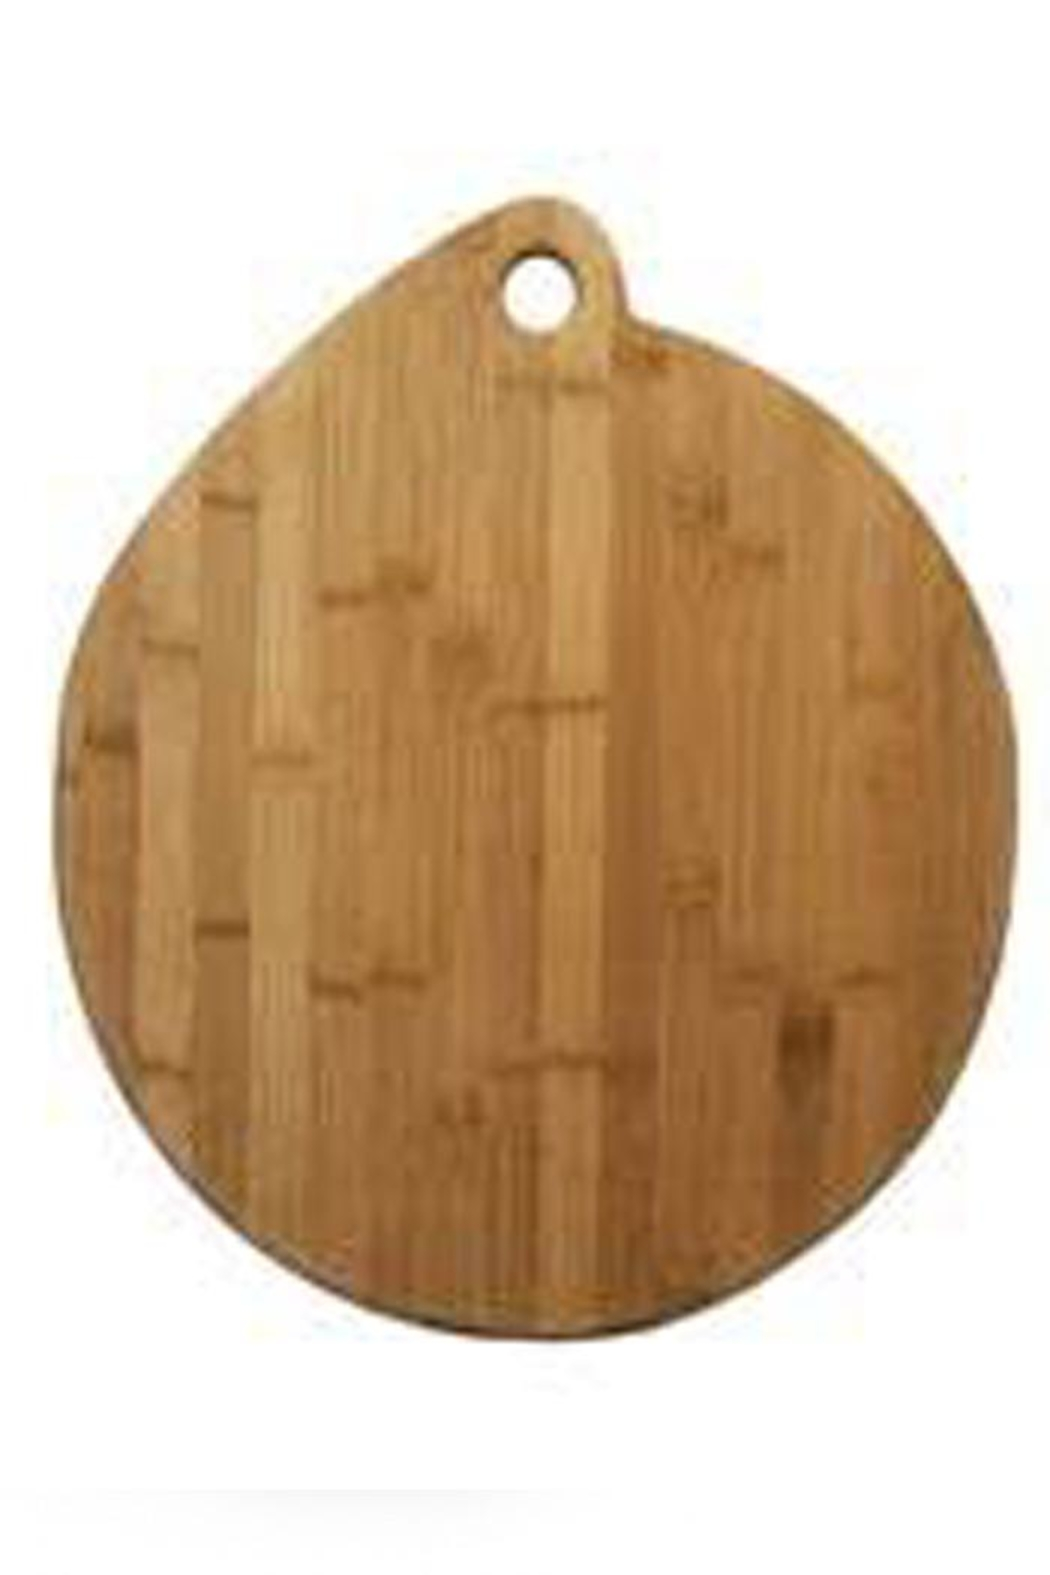 Totally Bamboo Bamboo Pizza Board - Main Image